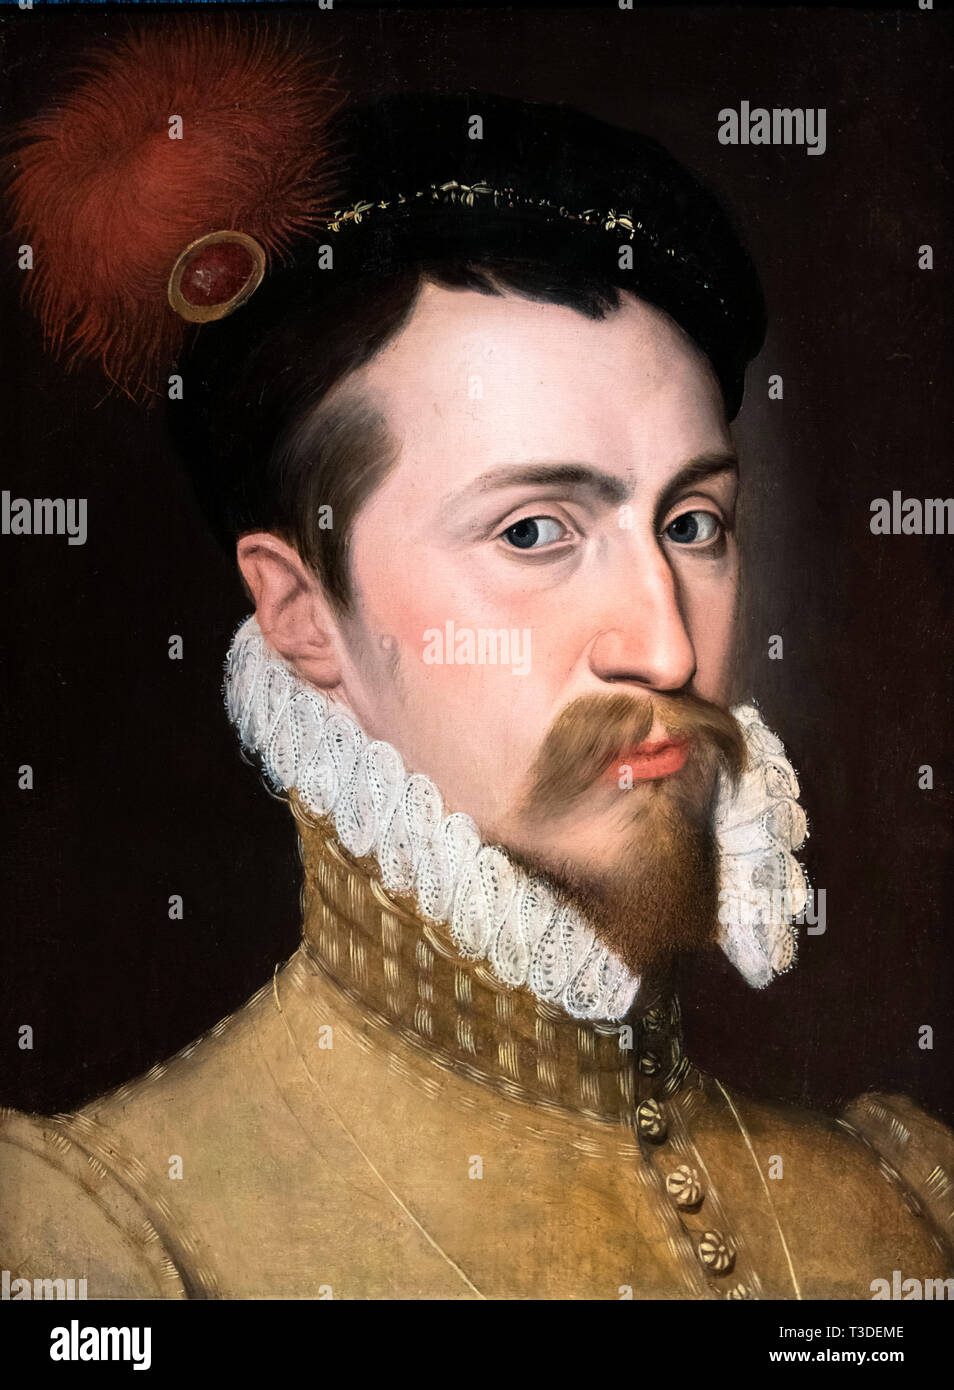 Robert Dudley (1532/3-1588), 1st Earl of Leicester and favourite of Queen Elizabeth I, oil on panel by unknown artist, c.1565-70 - Stock Image